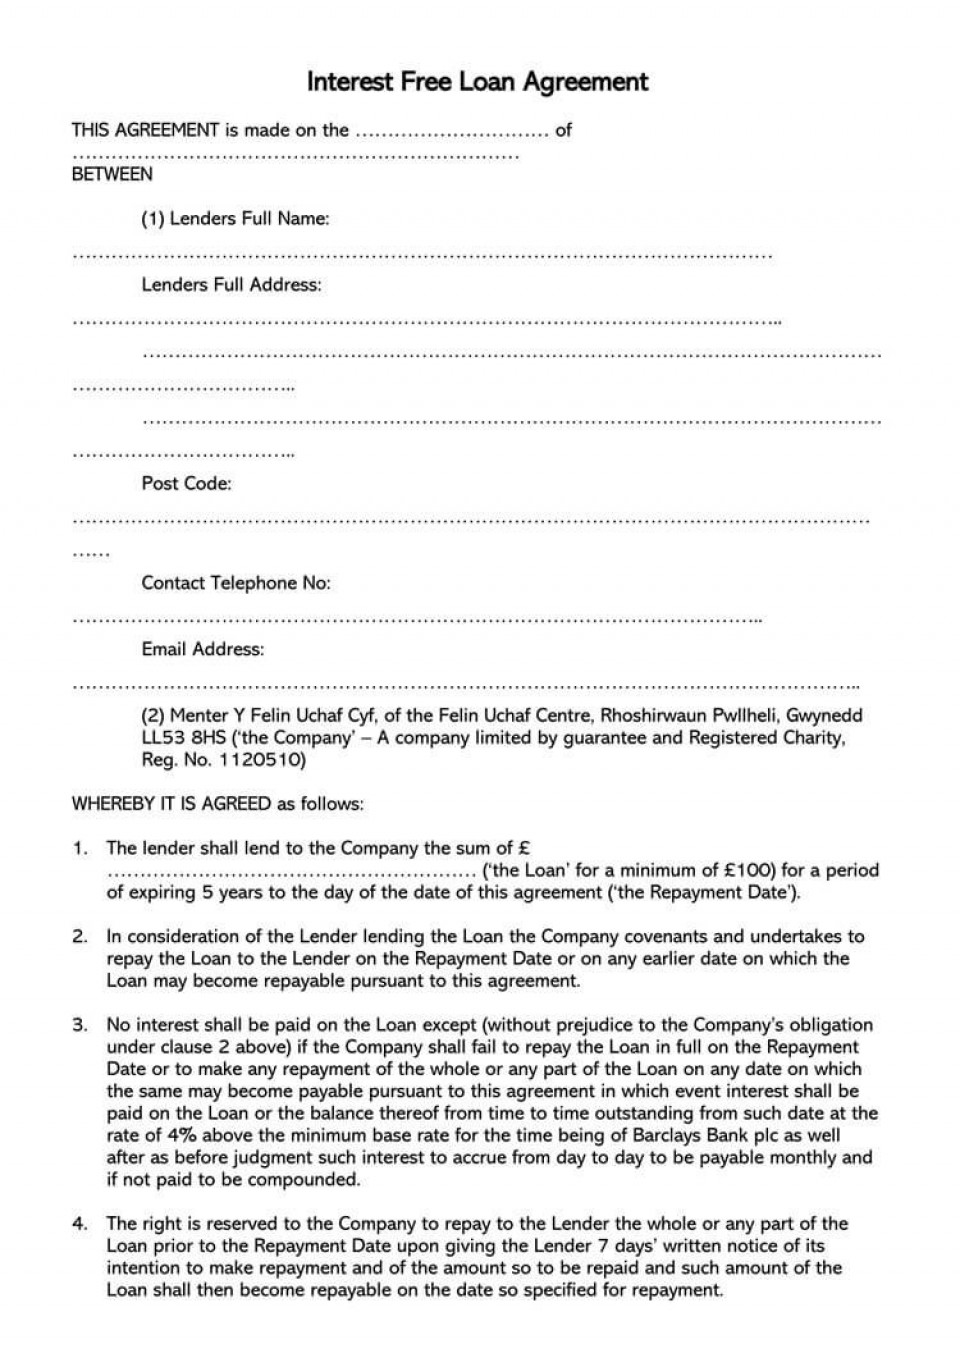 003 Simple Free Loan Agreement Template Example  Ontario Word Pdf Australia South Africa960